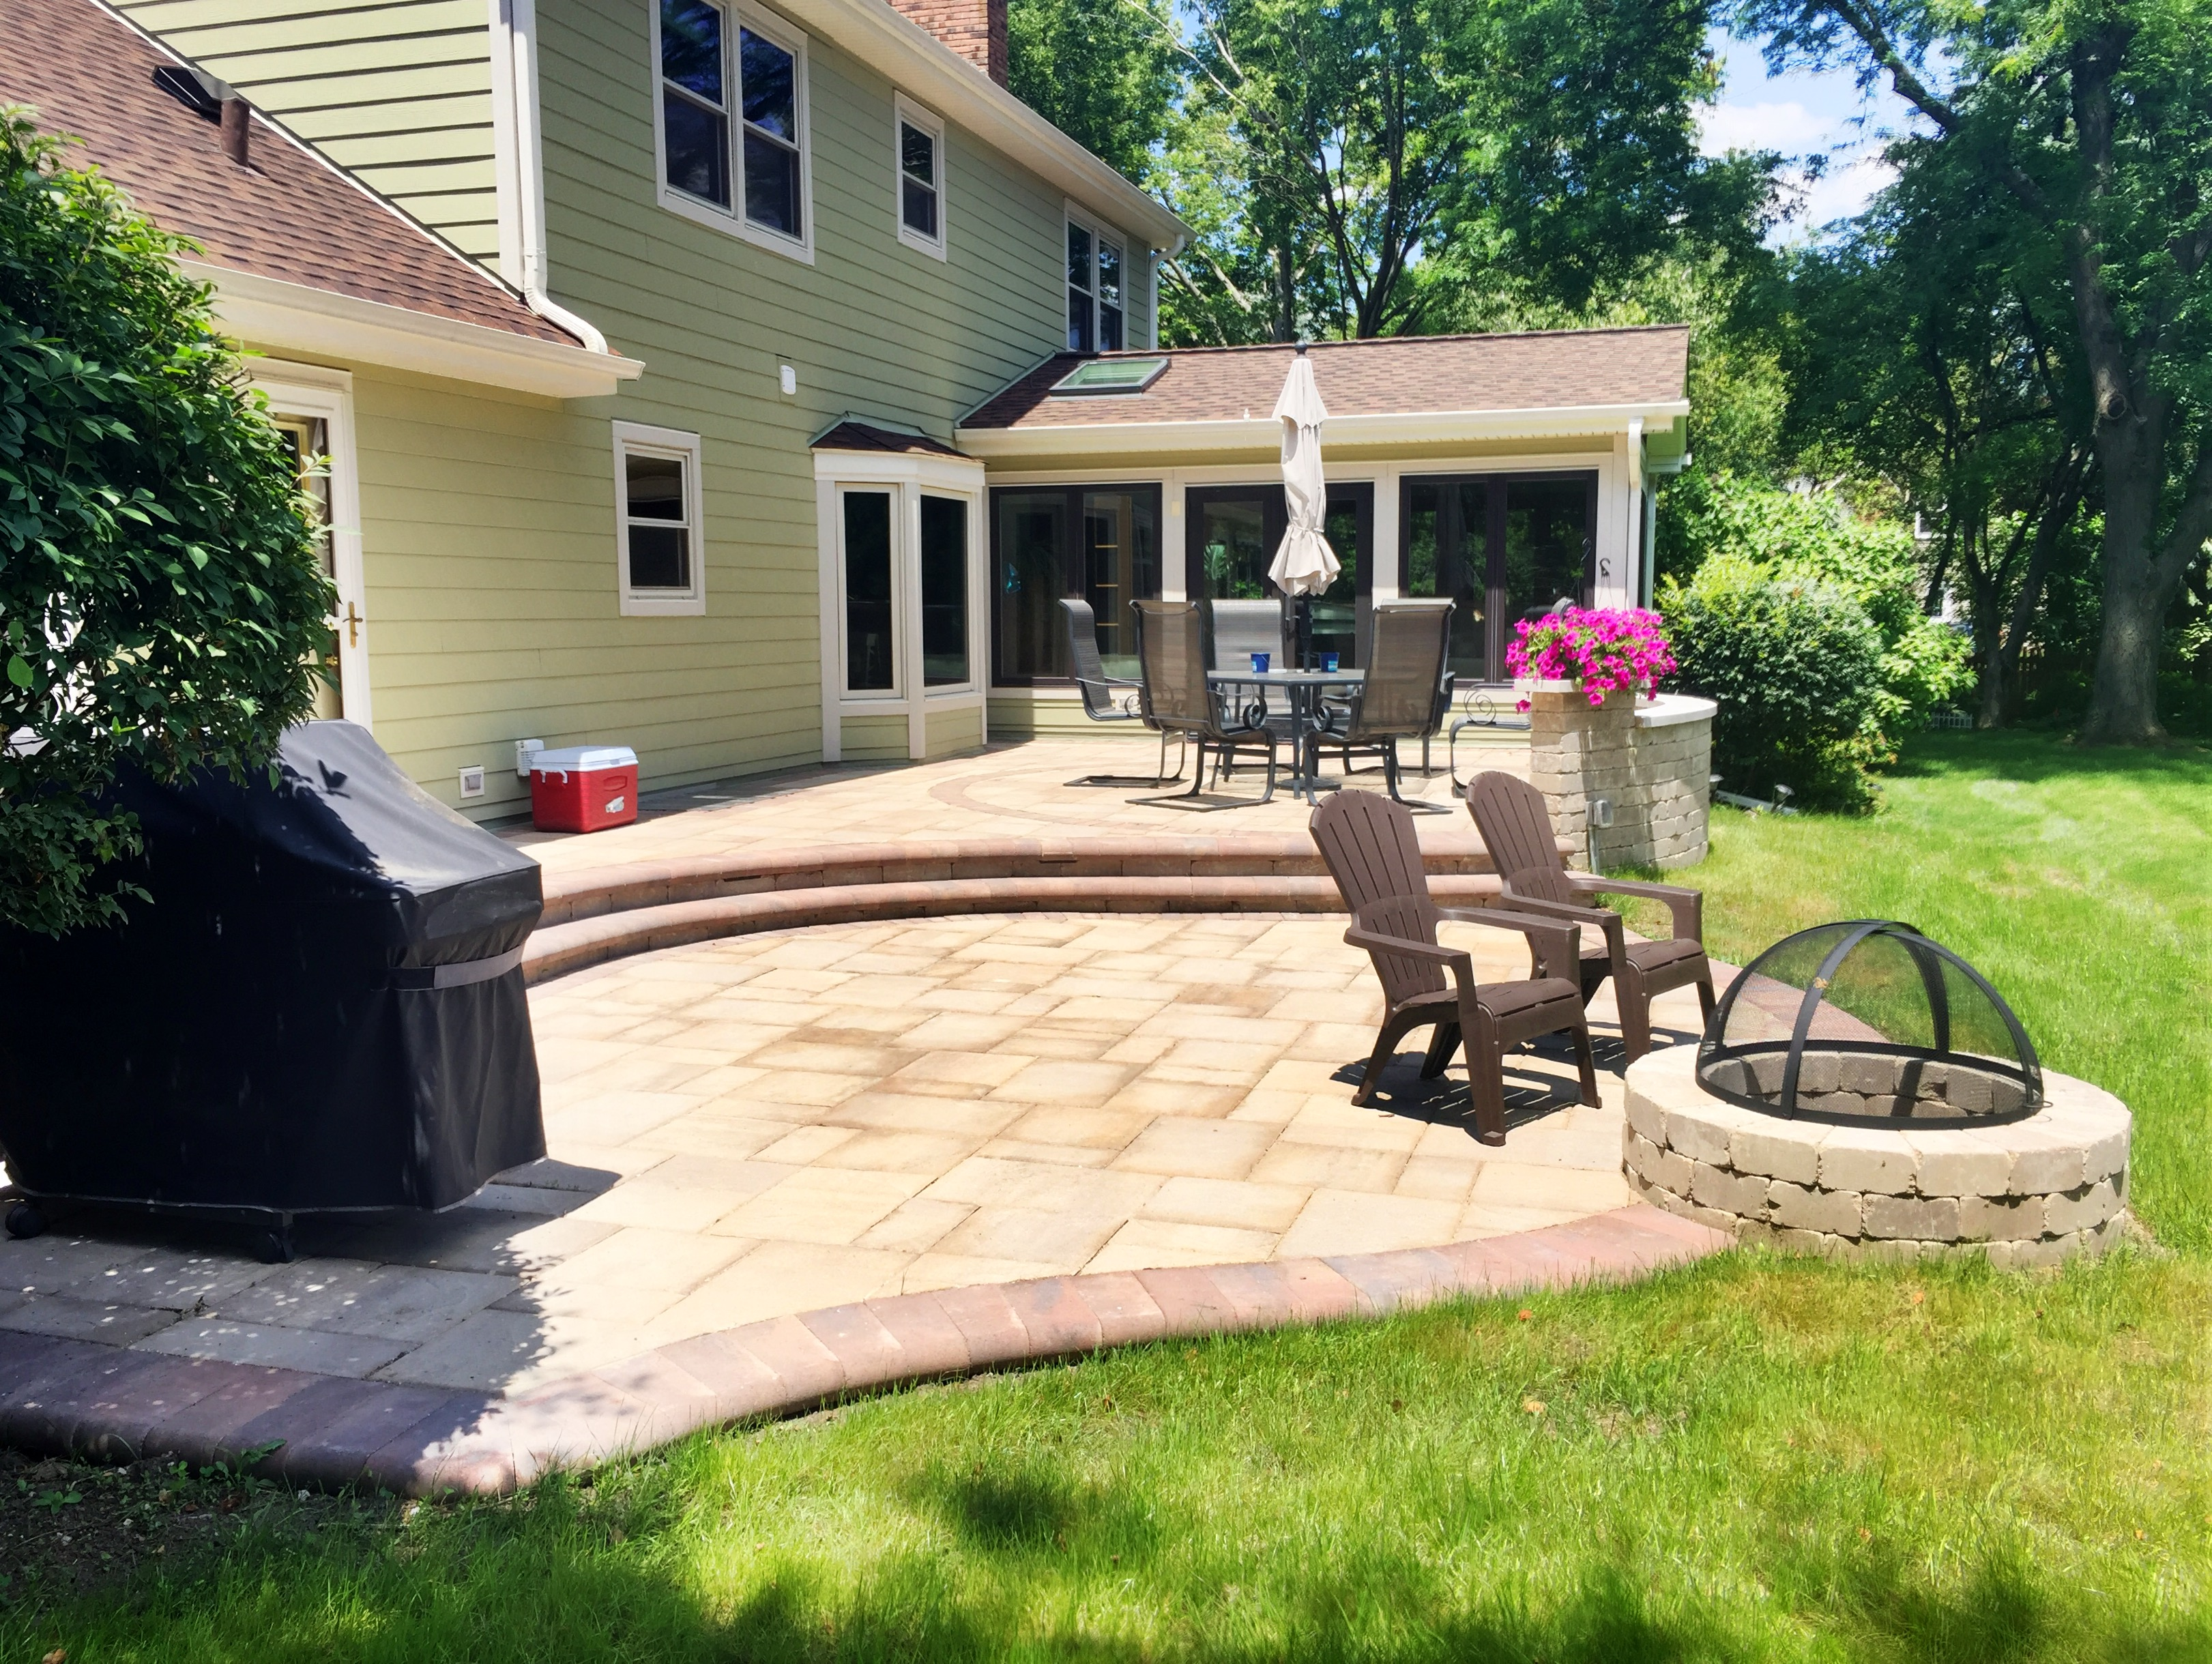 Archadeck Of Chicagolandu0027s Award Winning Project In The Hardscape Category  Is A Spacious, Multi Level Belgard Paver Patio. The Patiou0027s Different  Levels ...